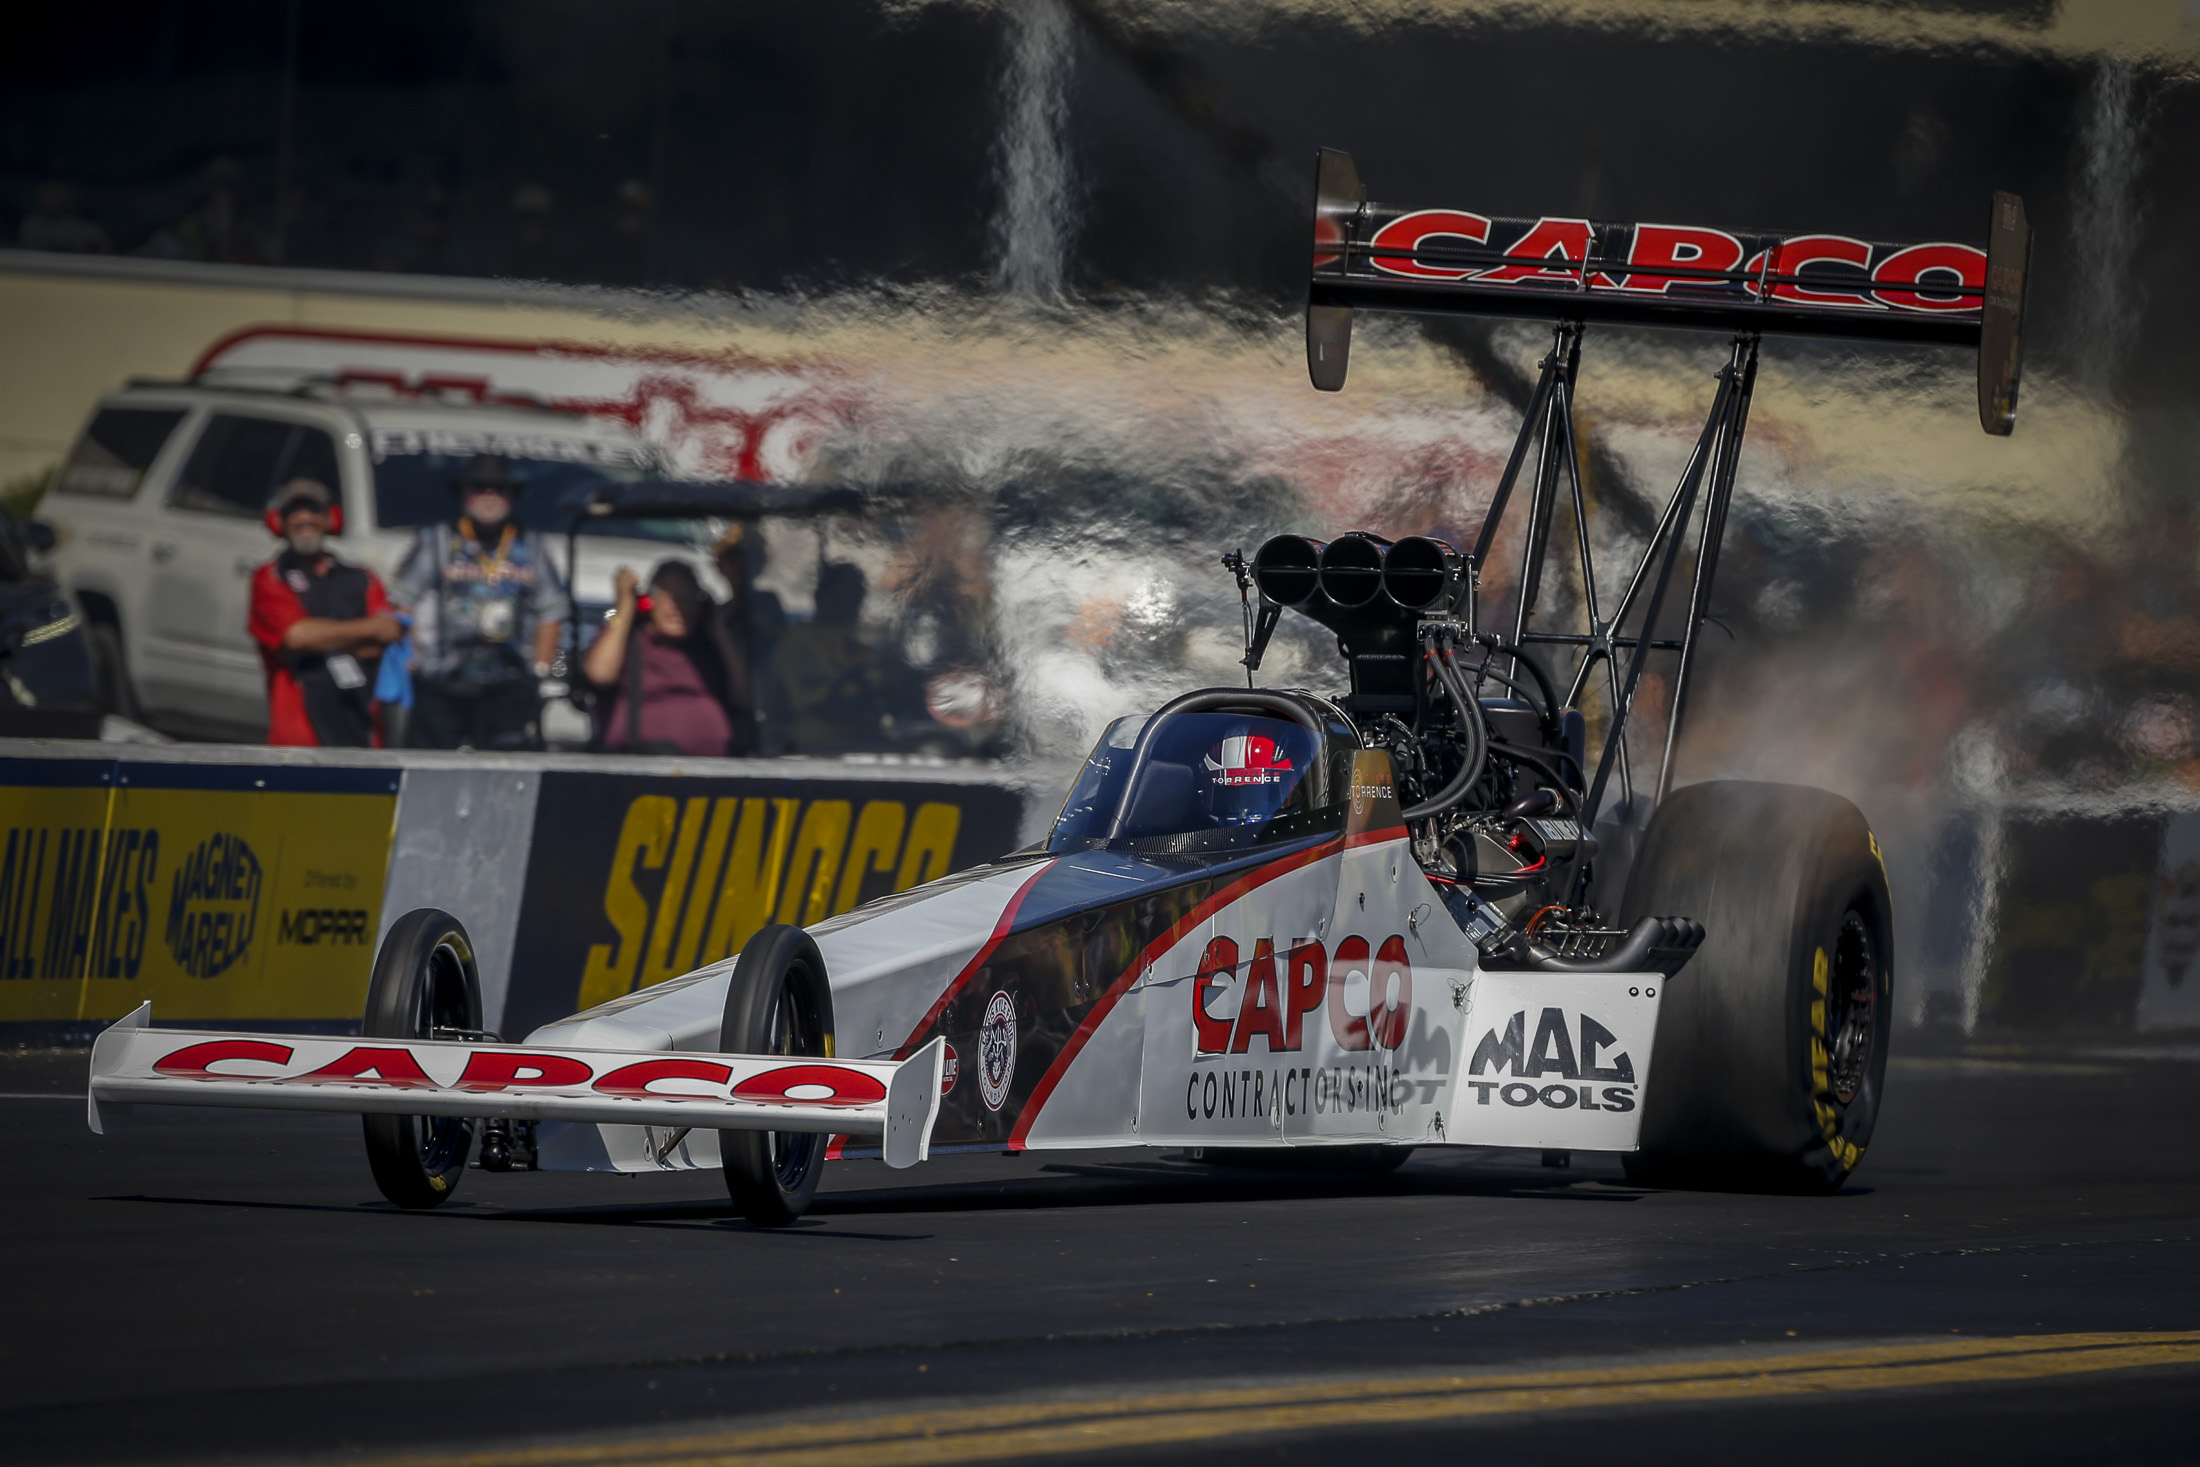 Top Fuel Dragster pilot Steve Torrence racing on Sunday at the Dodge NHRA Nationals